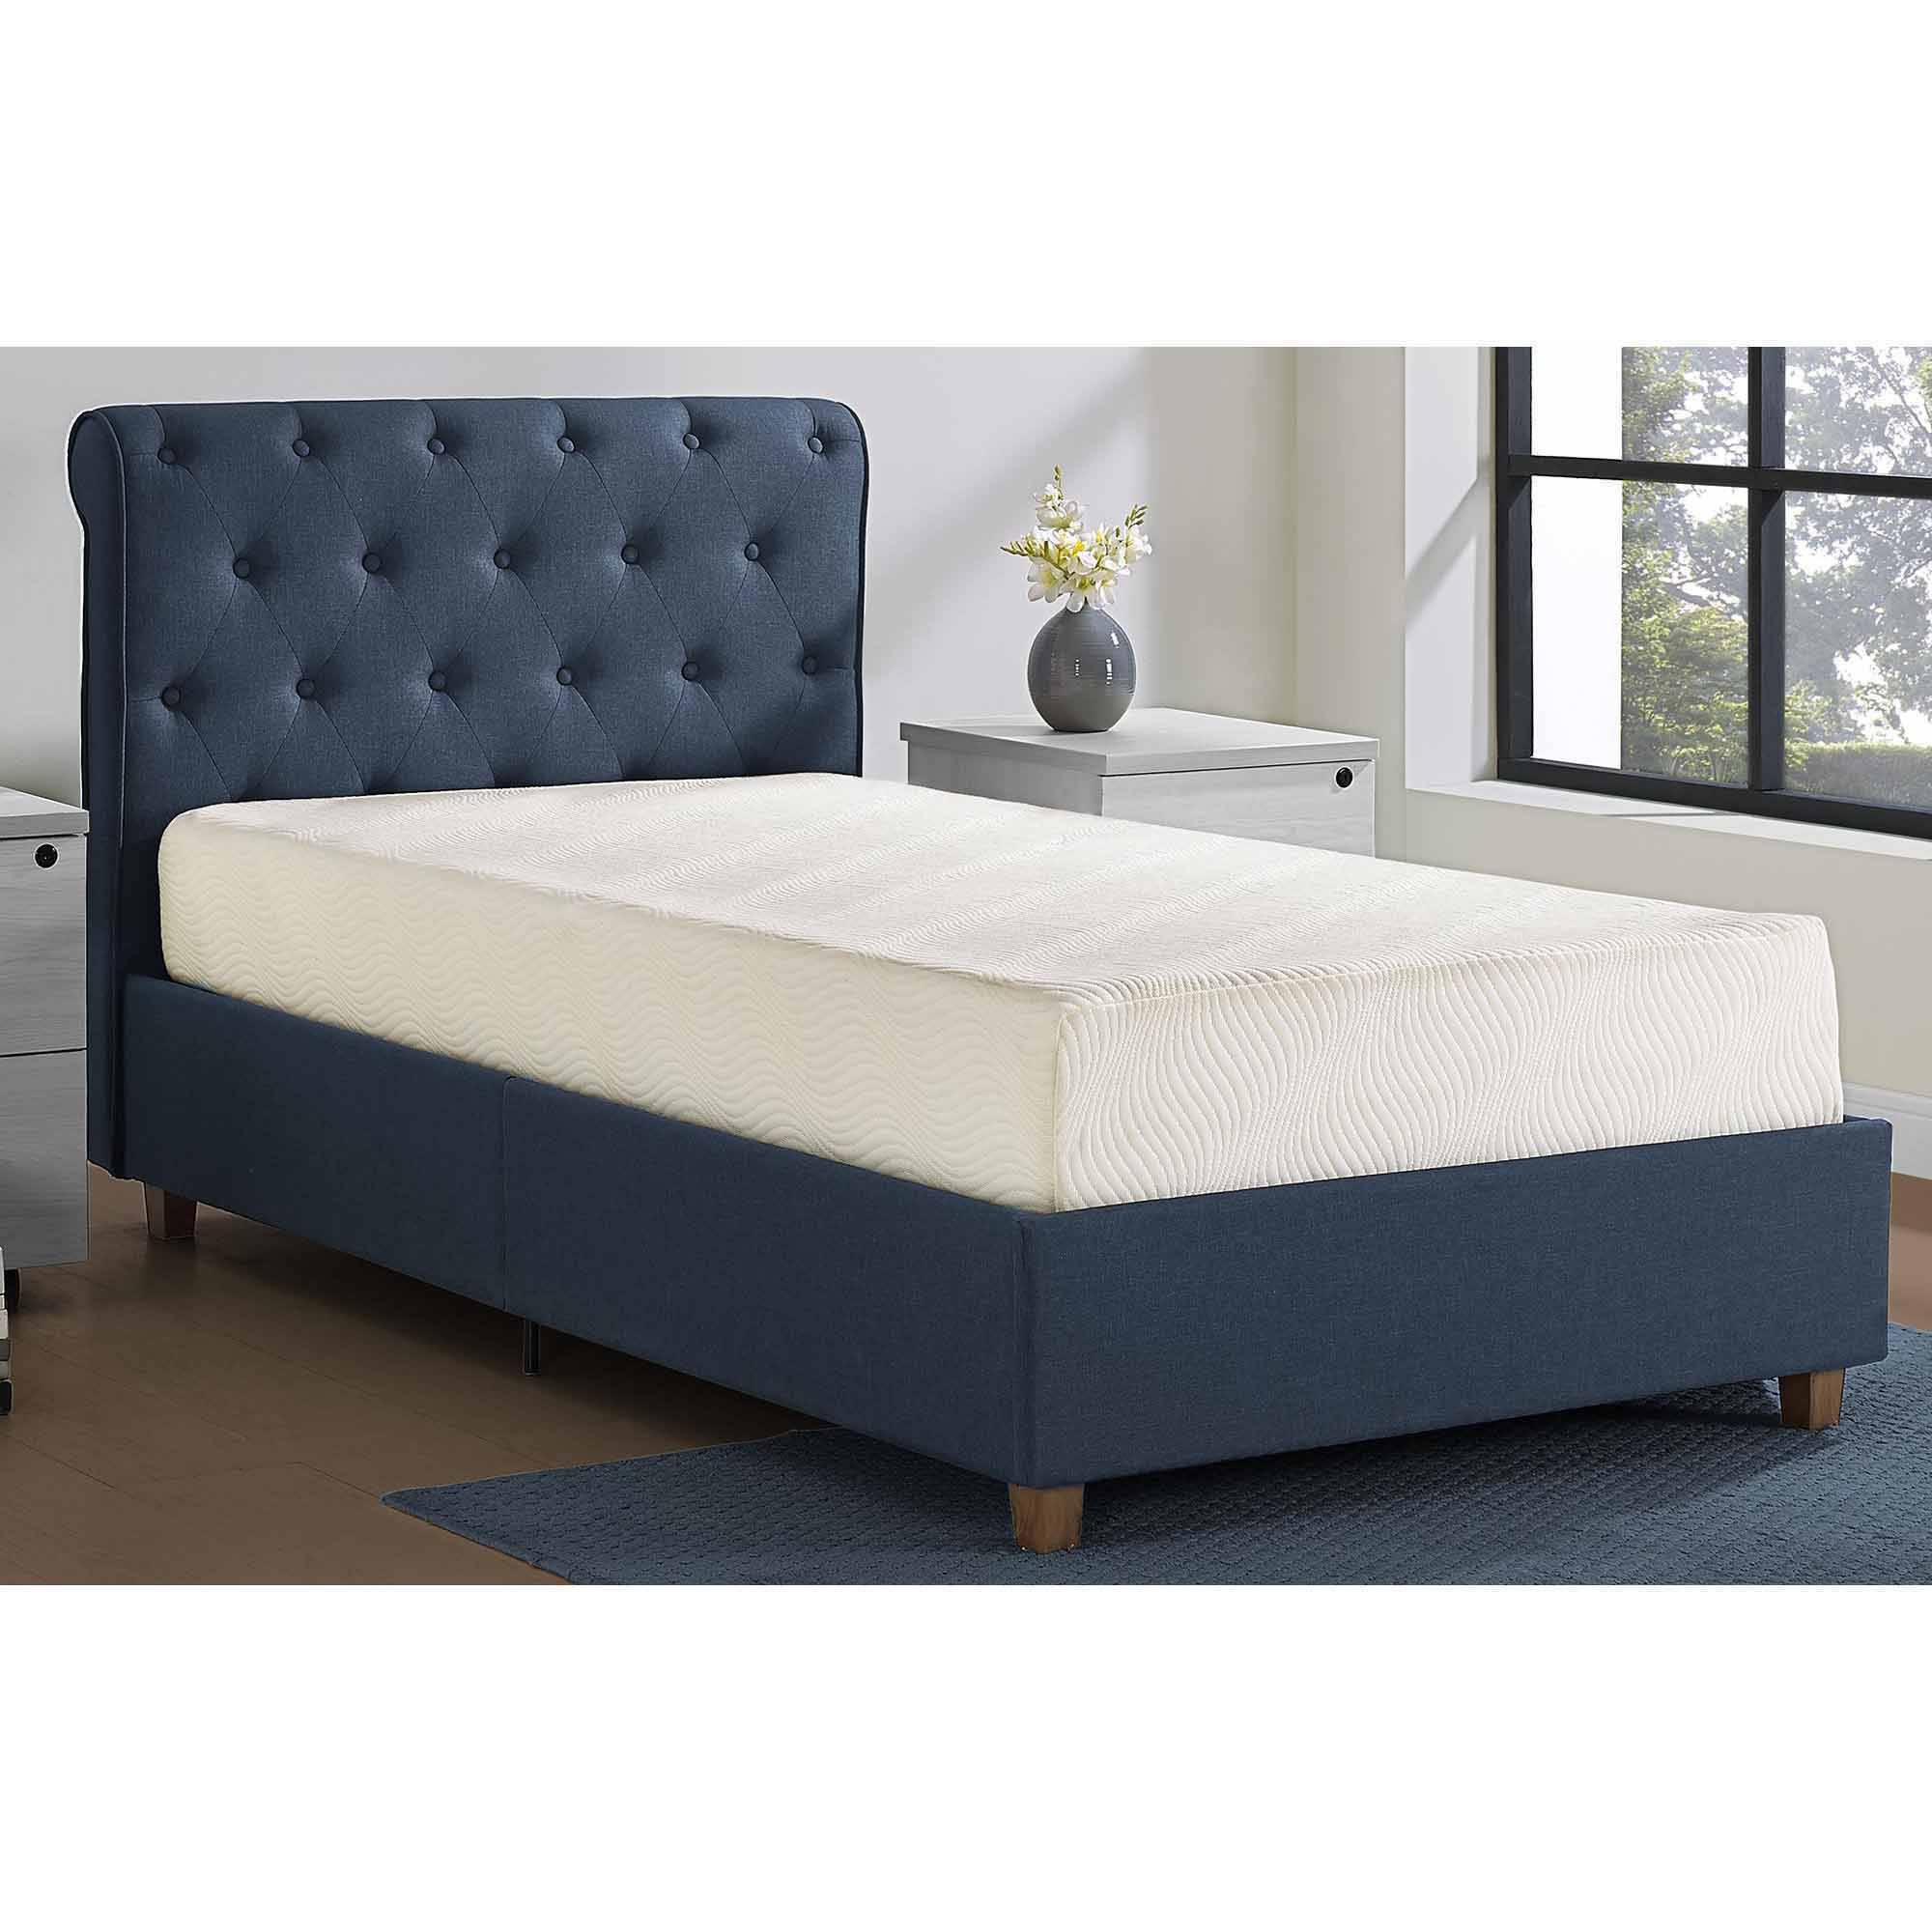 "Mainstays 8"" Memory Foam Mattress, Multiple Sizes"